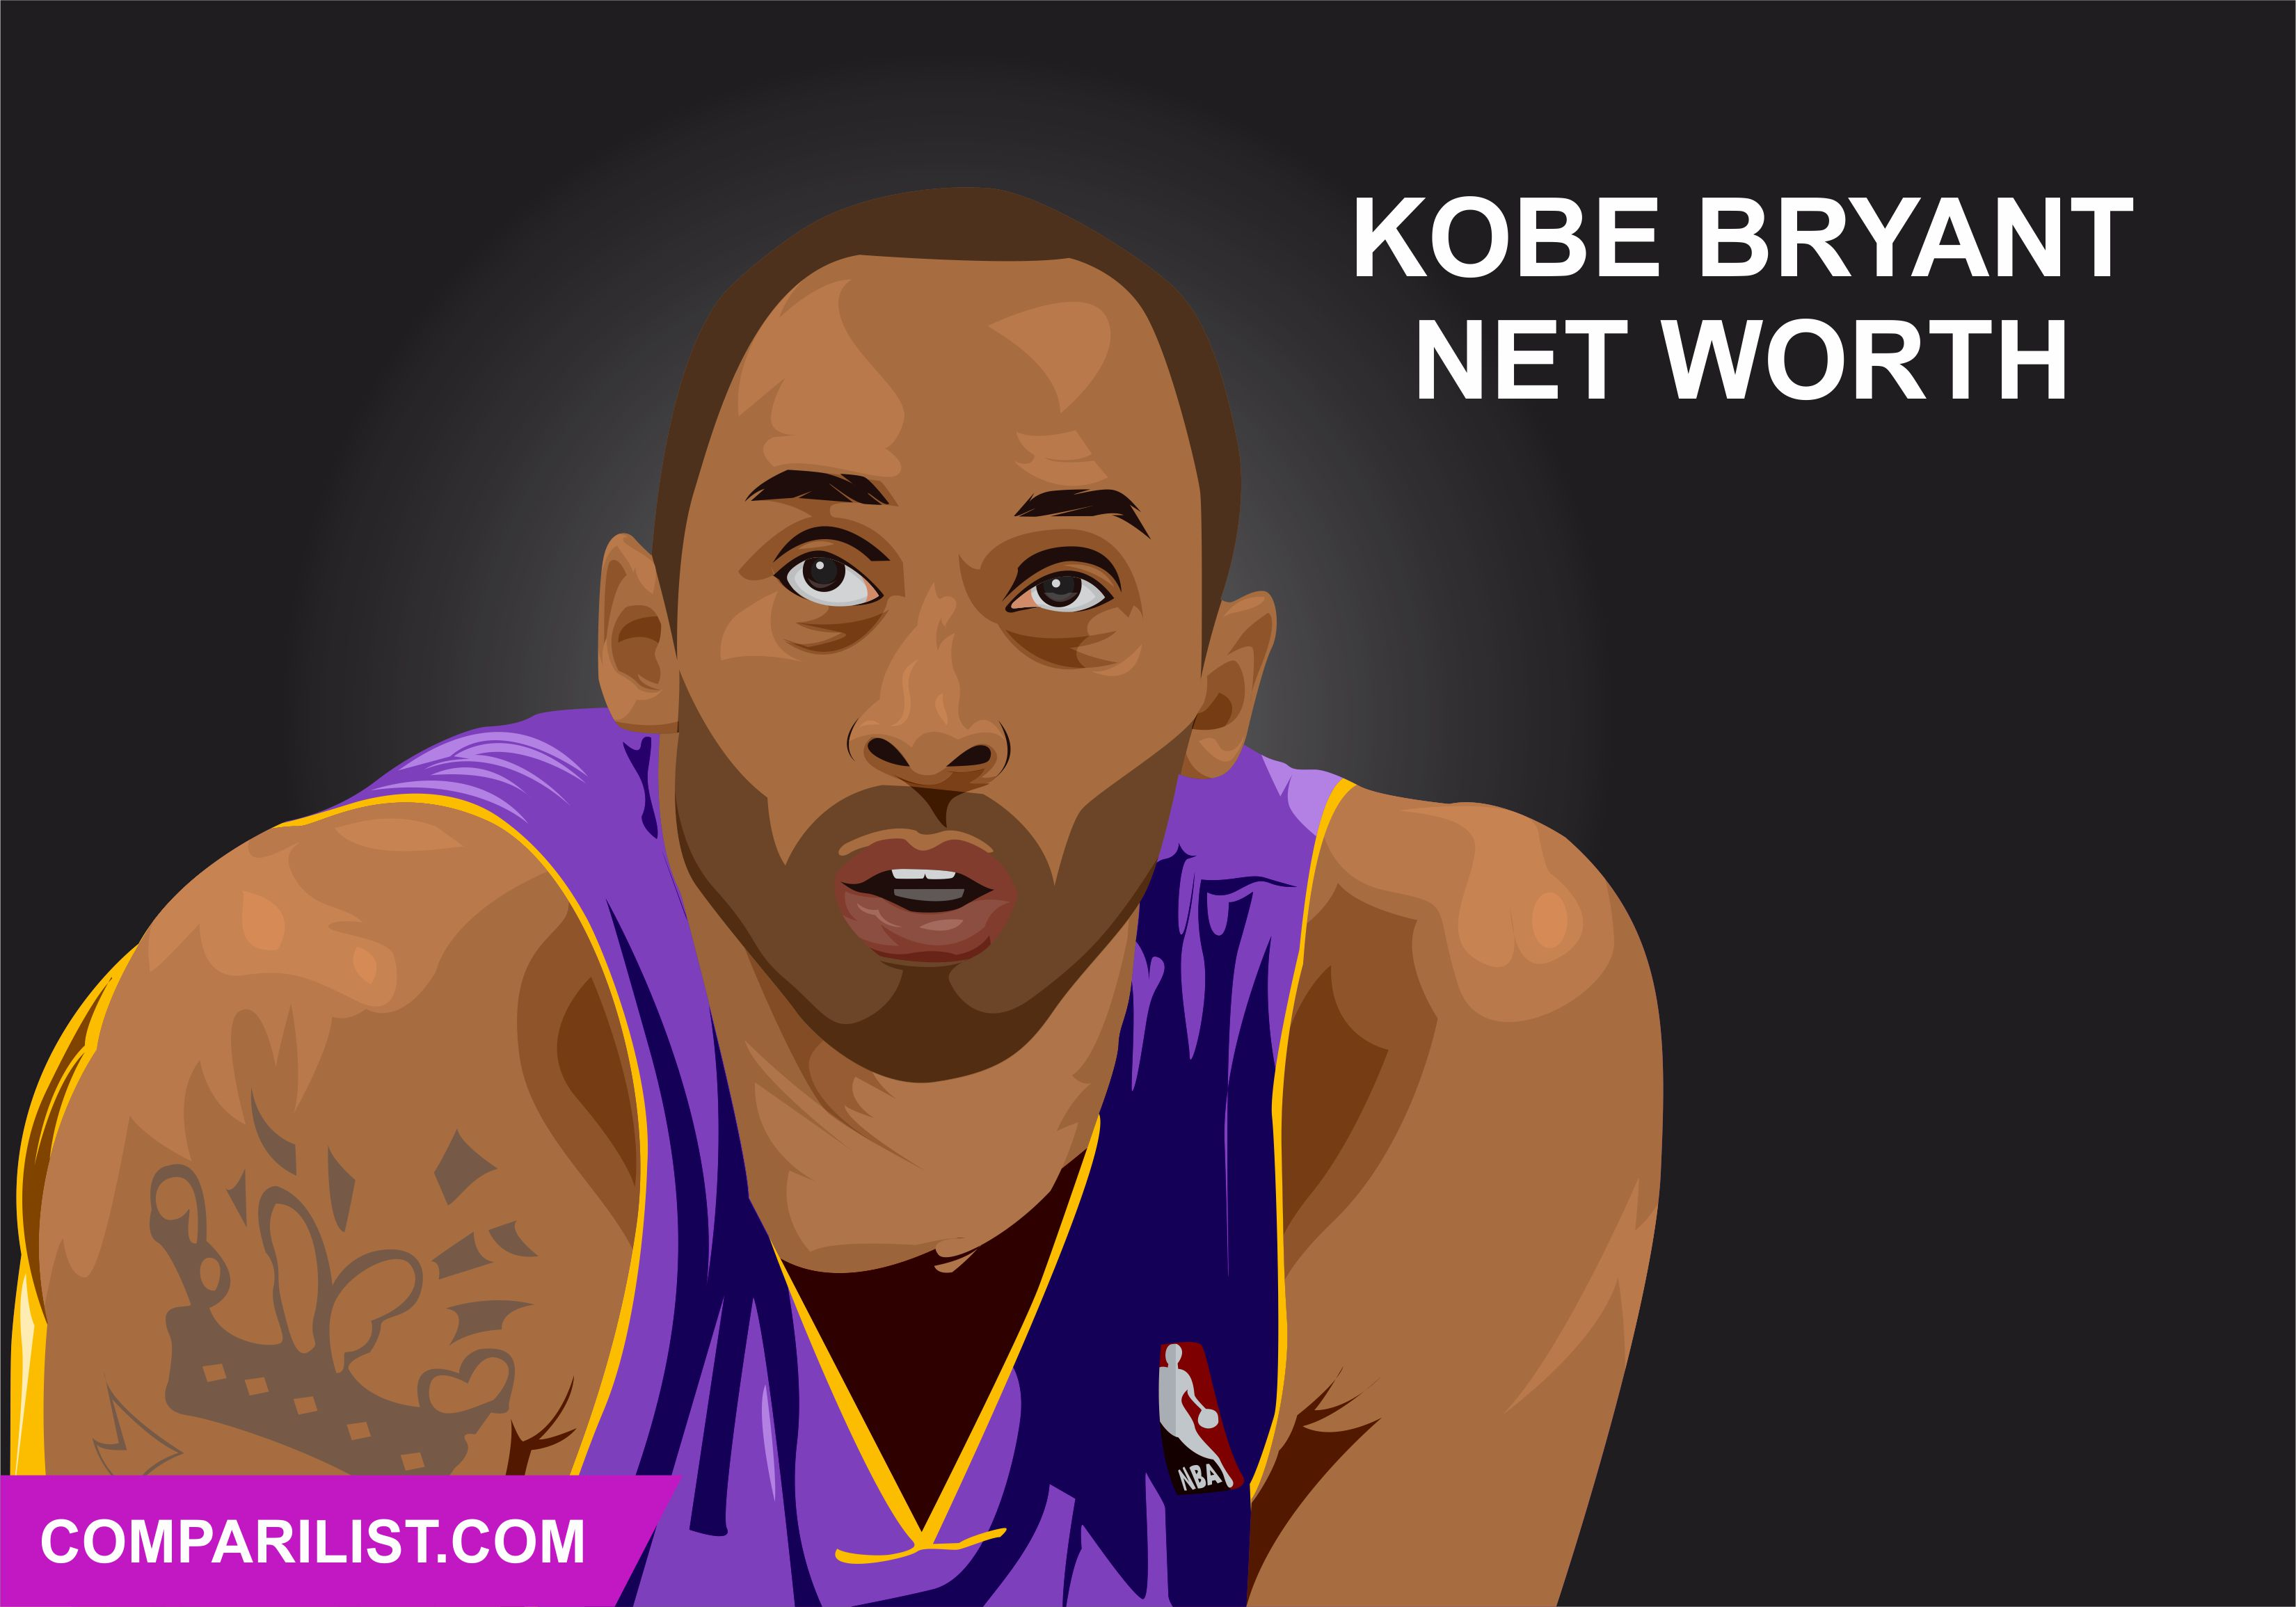 Kobe bryant had an illustrious career but faced troubles off the court